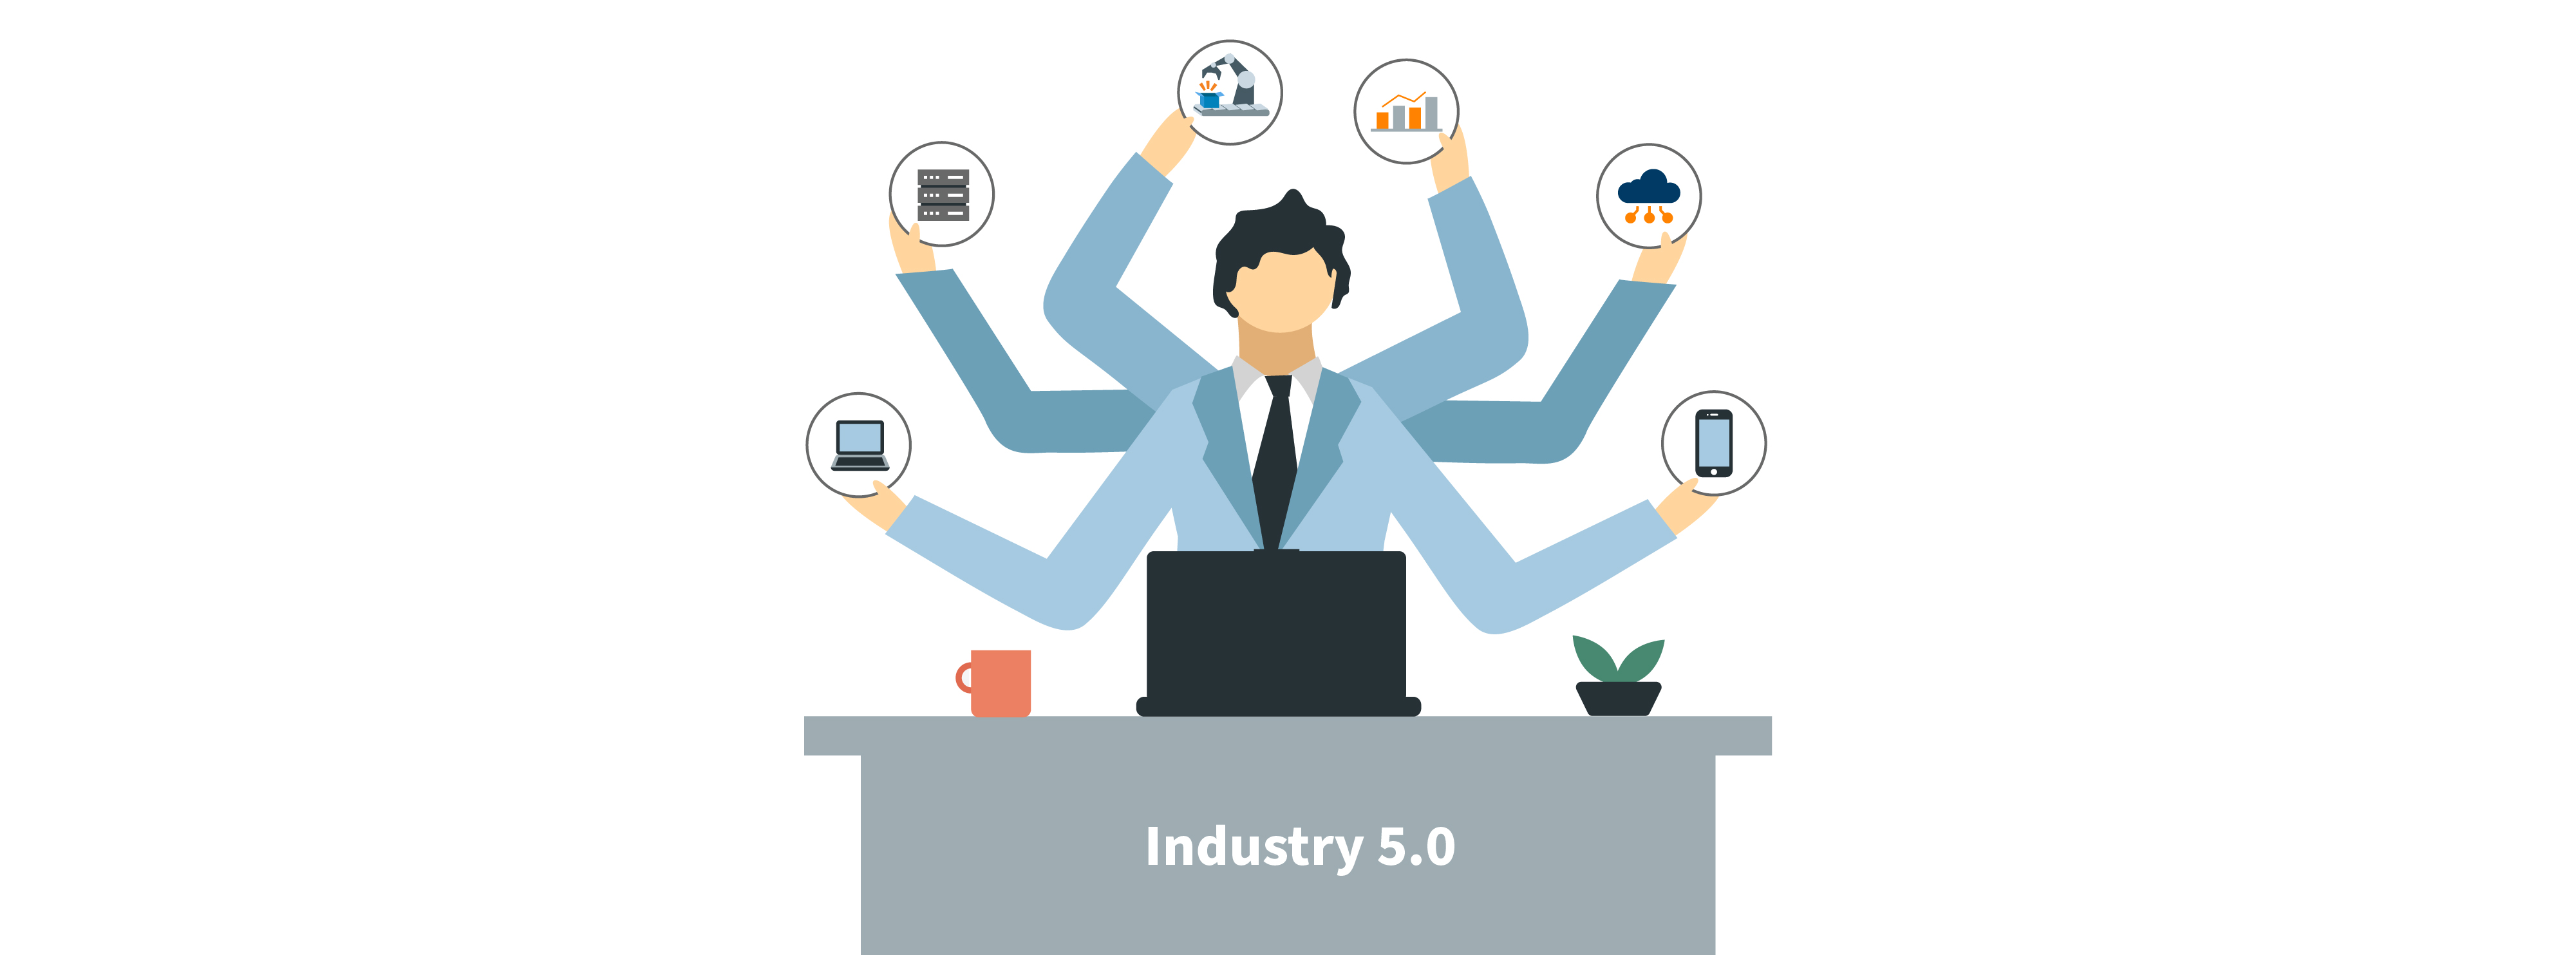 Person at desk juggling with many requirements for industry 5.0